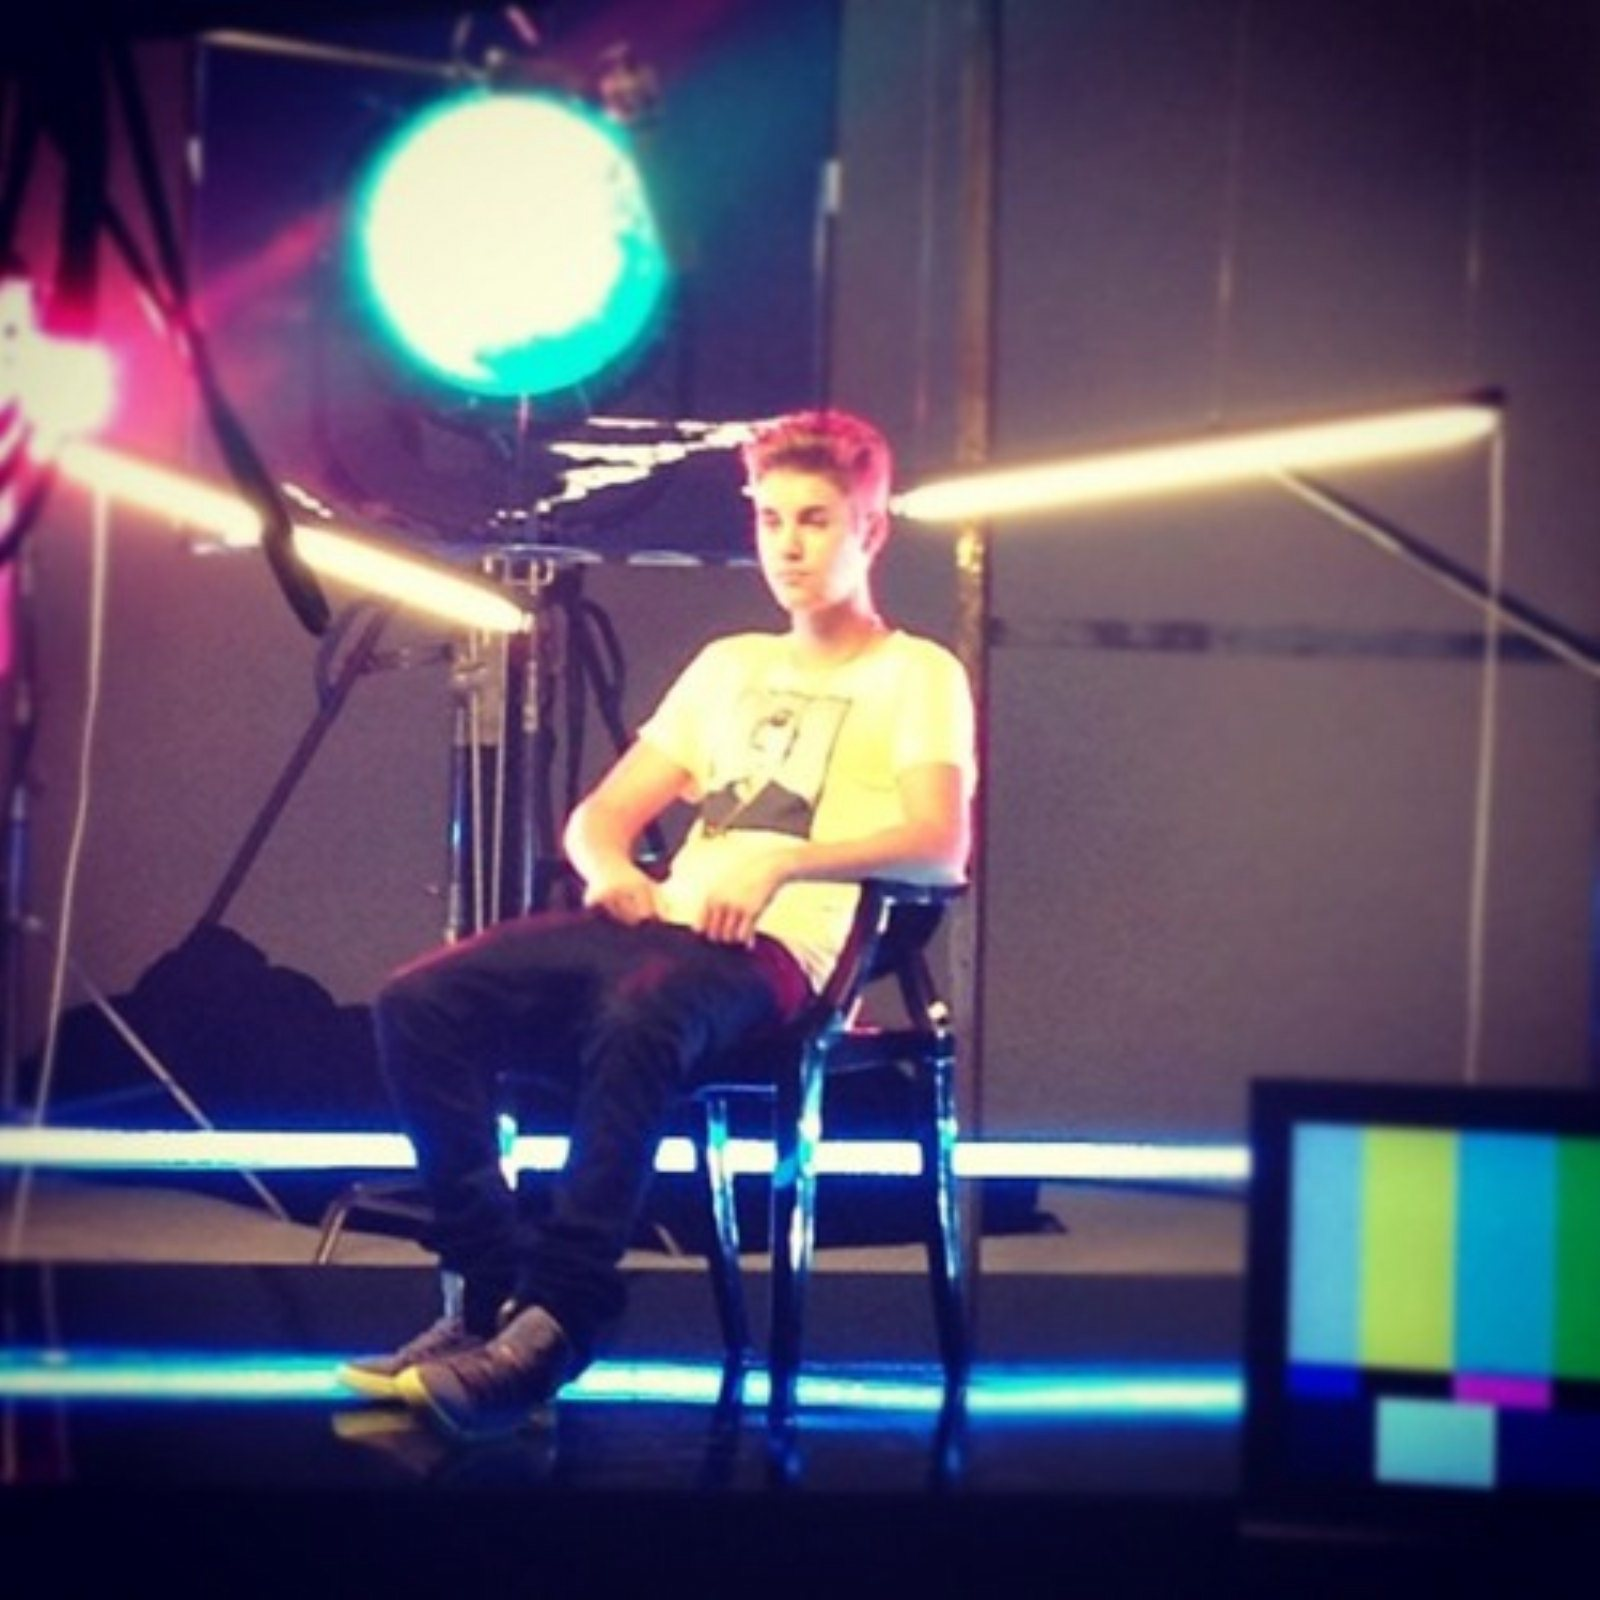 Justin Bieber, instagram., 2012 - Justin Bieber Photo ...